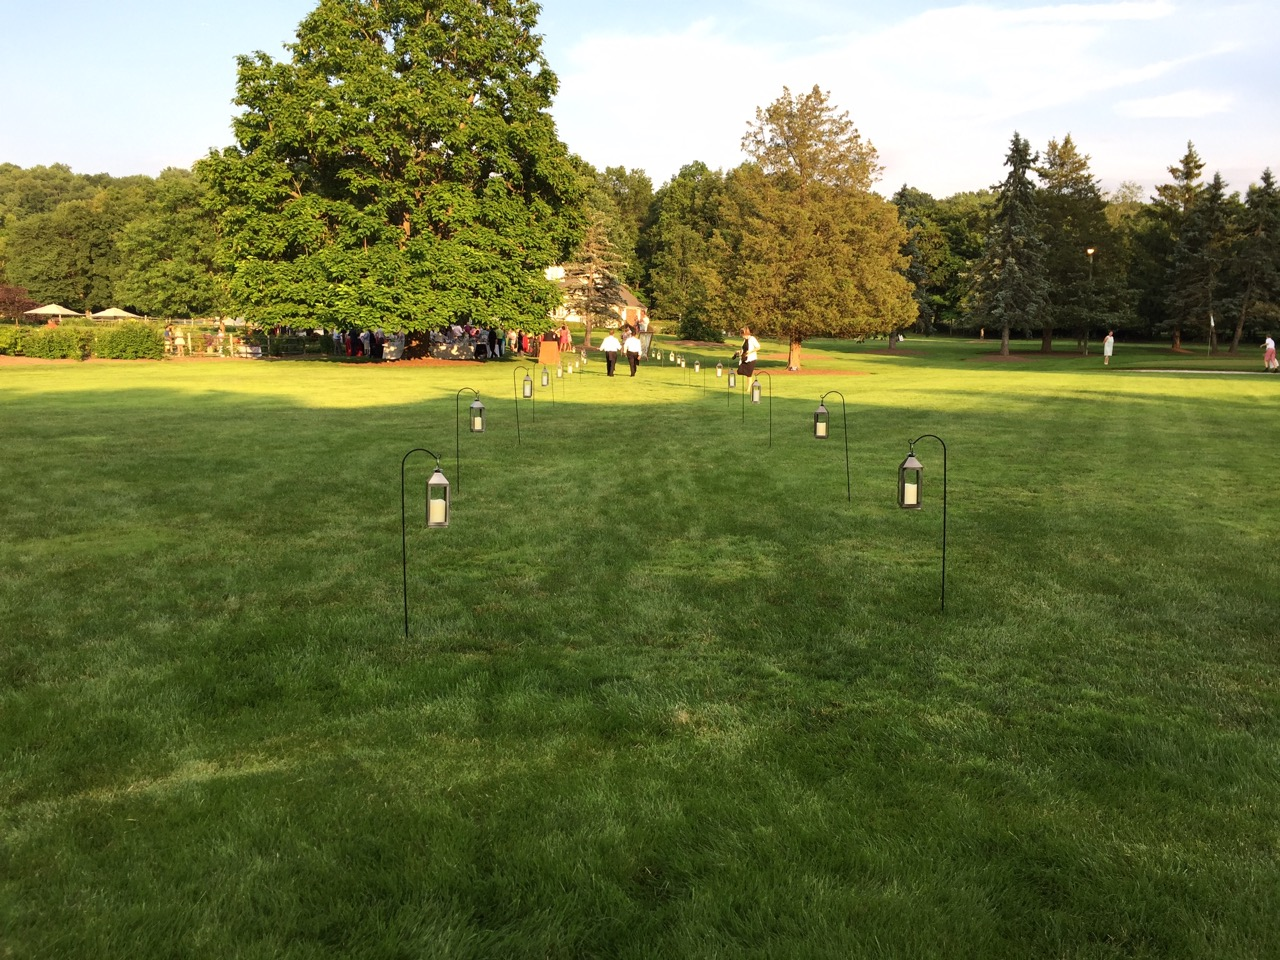 The view from the tent to the house and cocktail area, lined with lanterns on shepherd's hooks